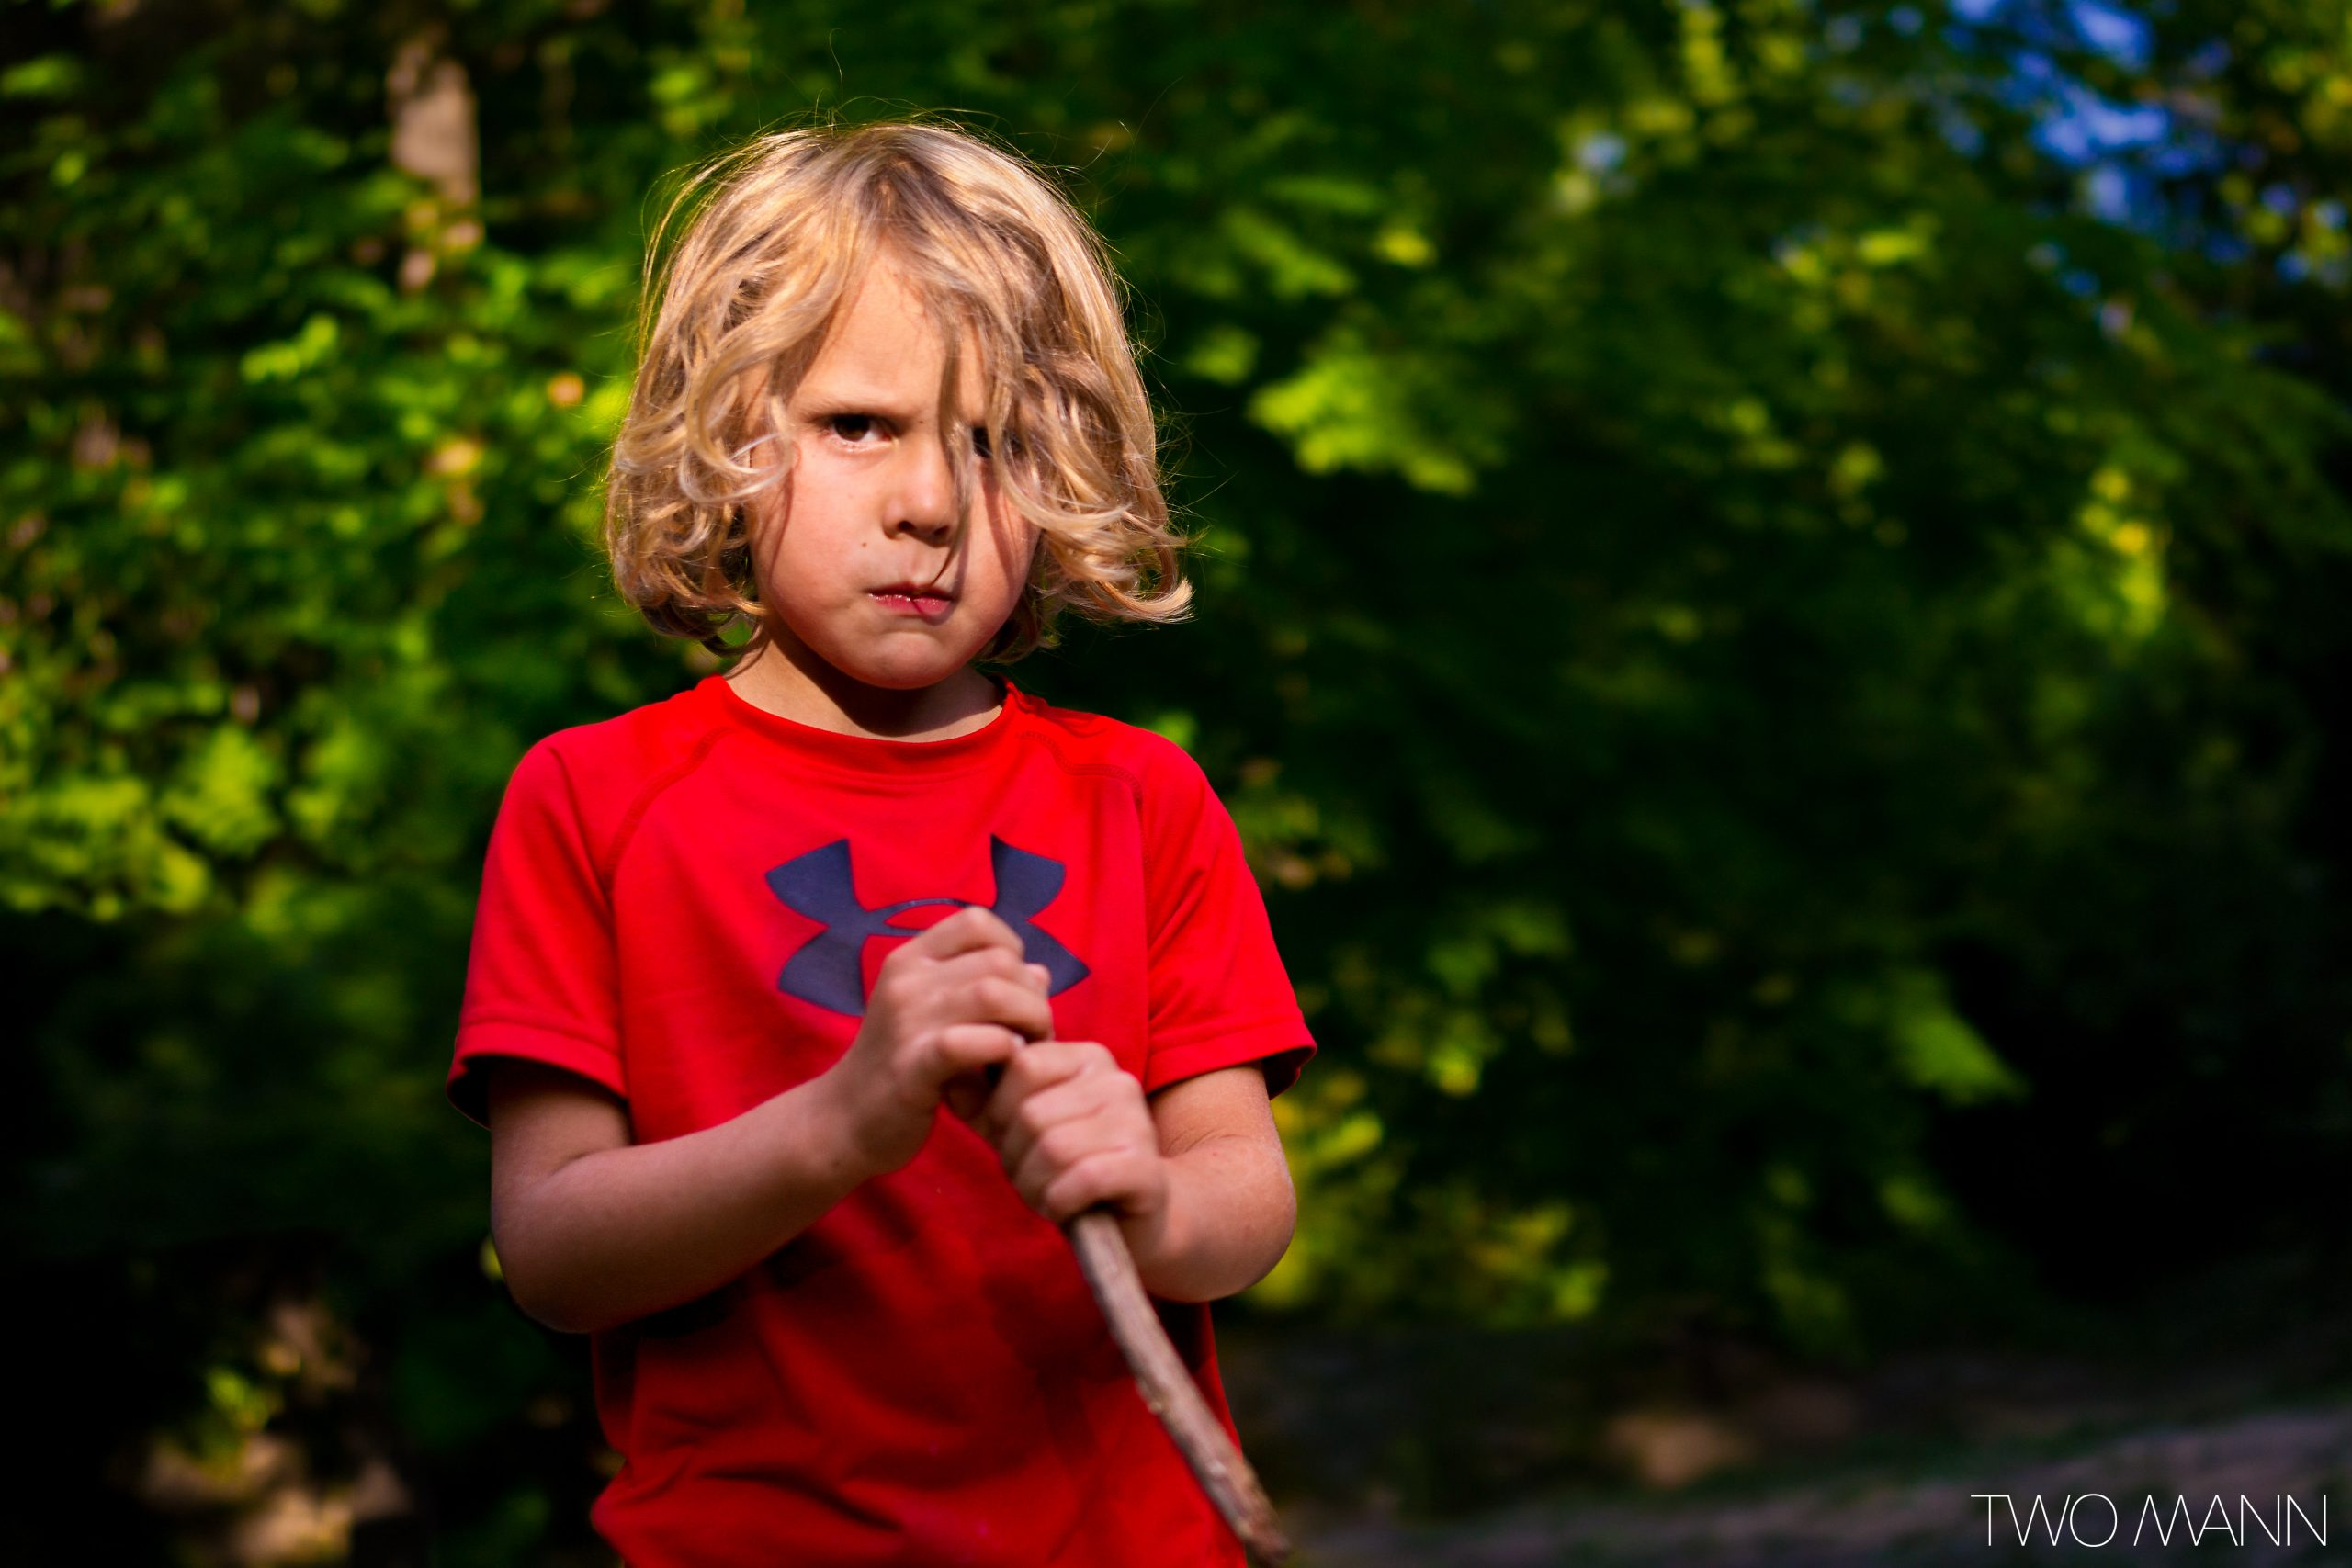 Young boy with long blonde hair with disappointed face